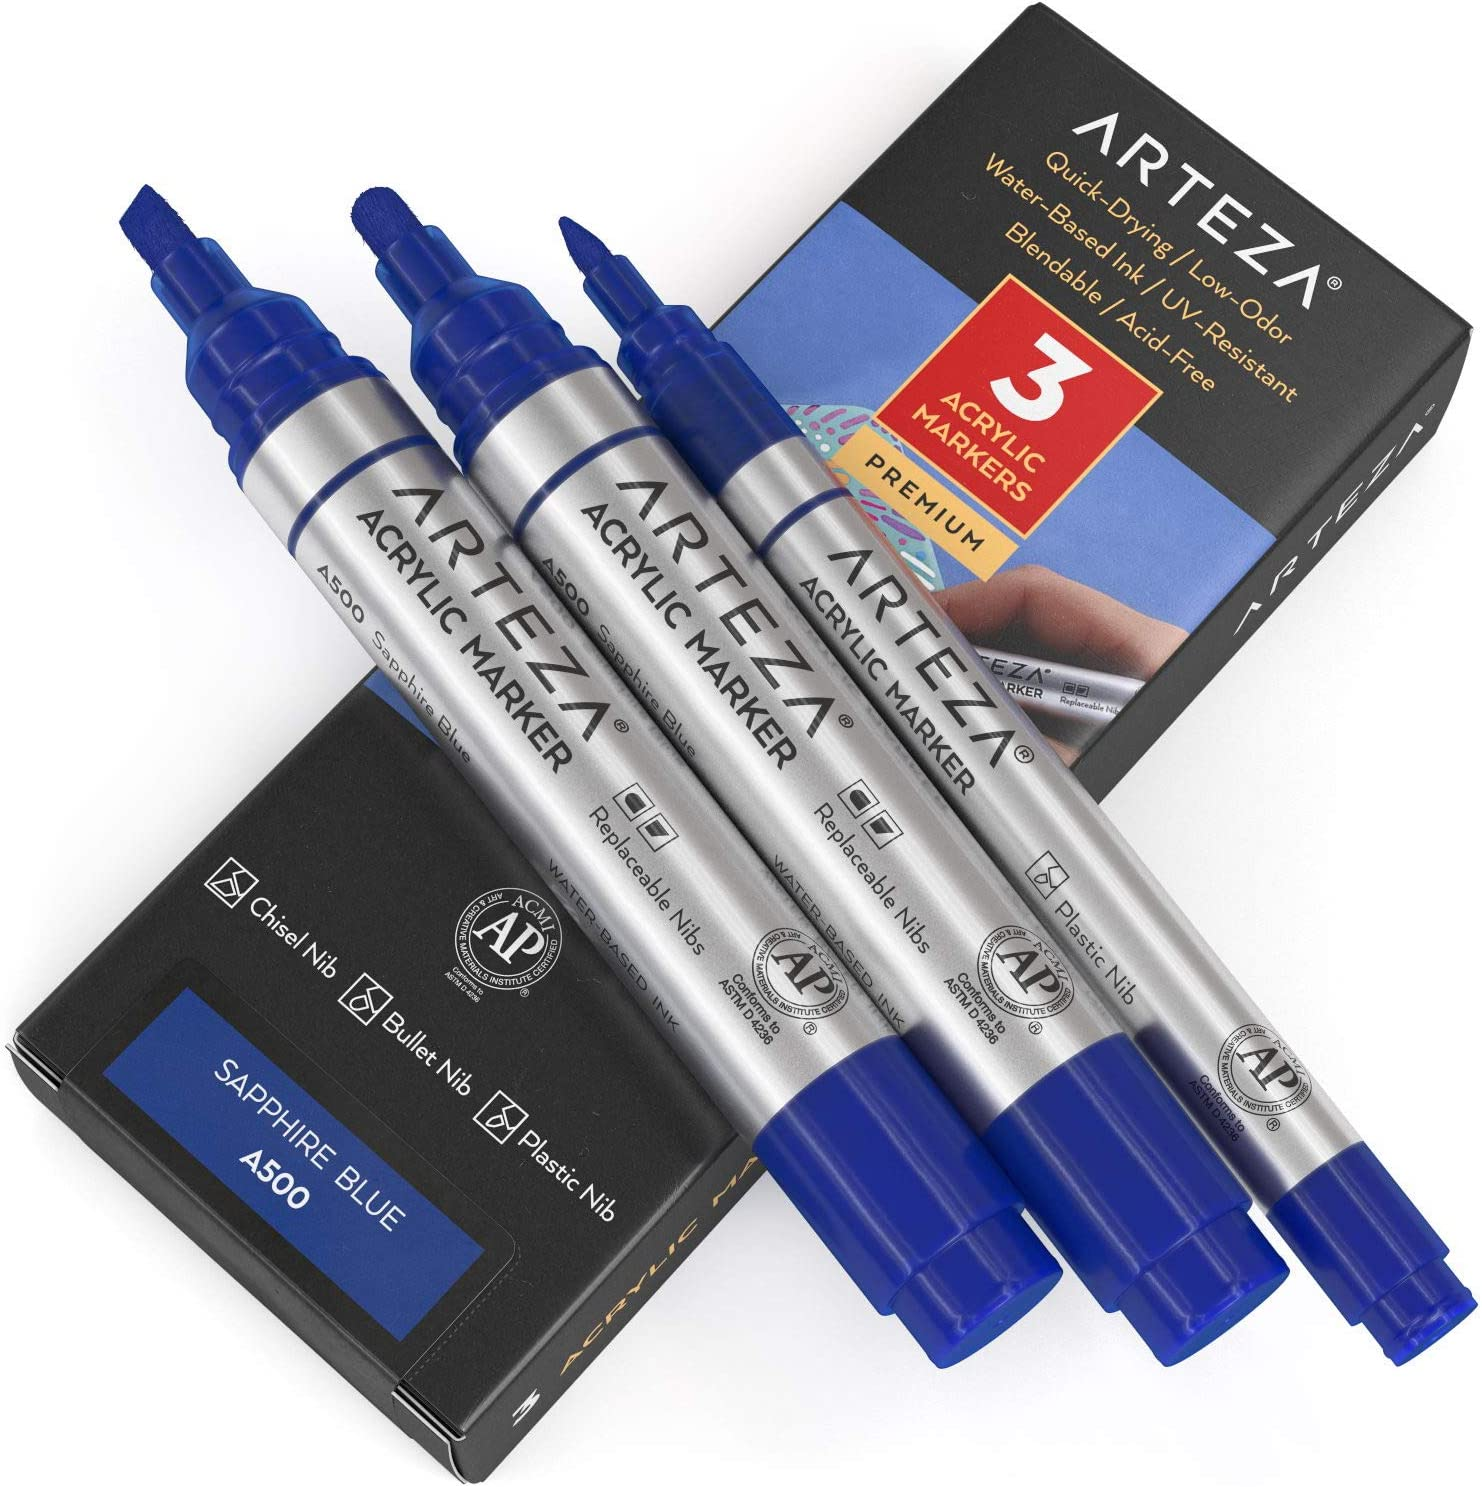 Arteza Acrylic Paint Markers Pack of T Sapphire 1 Japan's largest assortment A500 Blue Limited price sale 3